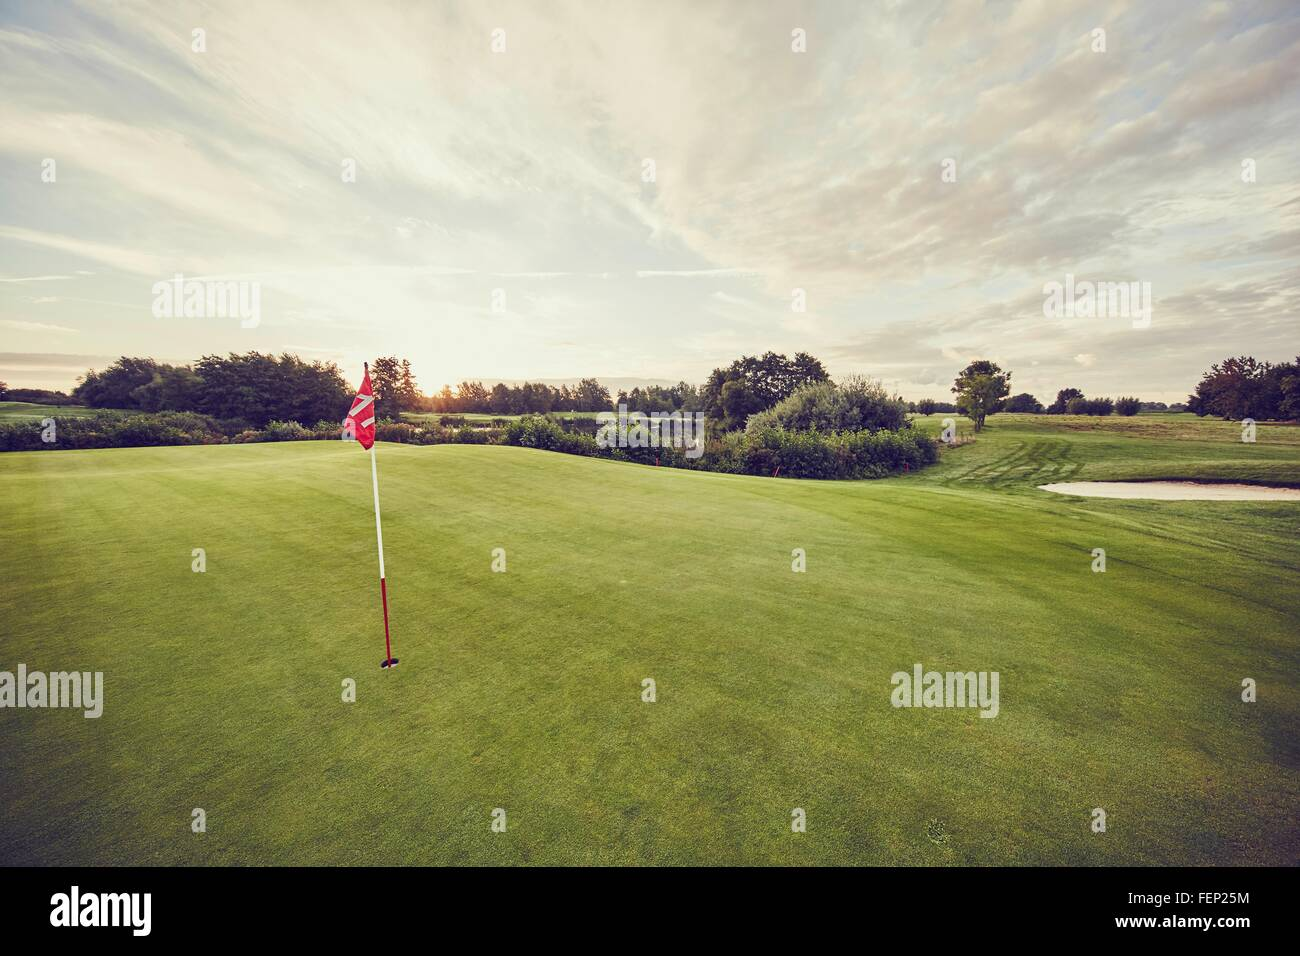 Flag in hole on golf course, Korschenbroich, Dusseldorf, Germany - Stock Image